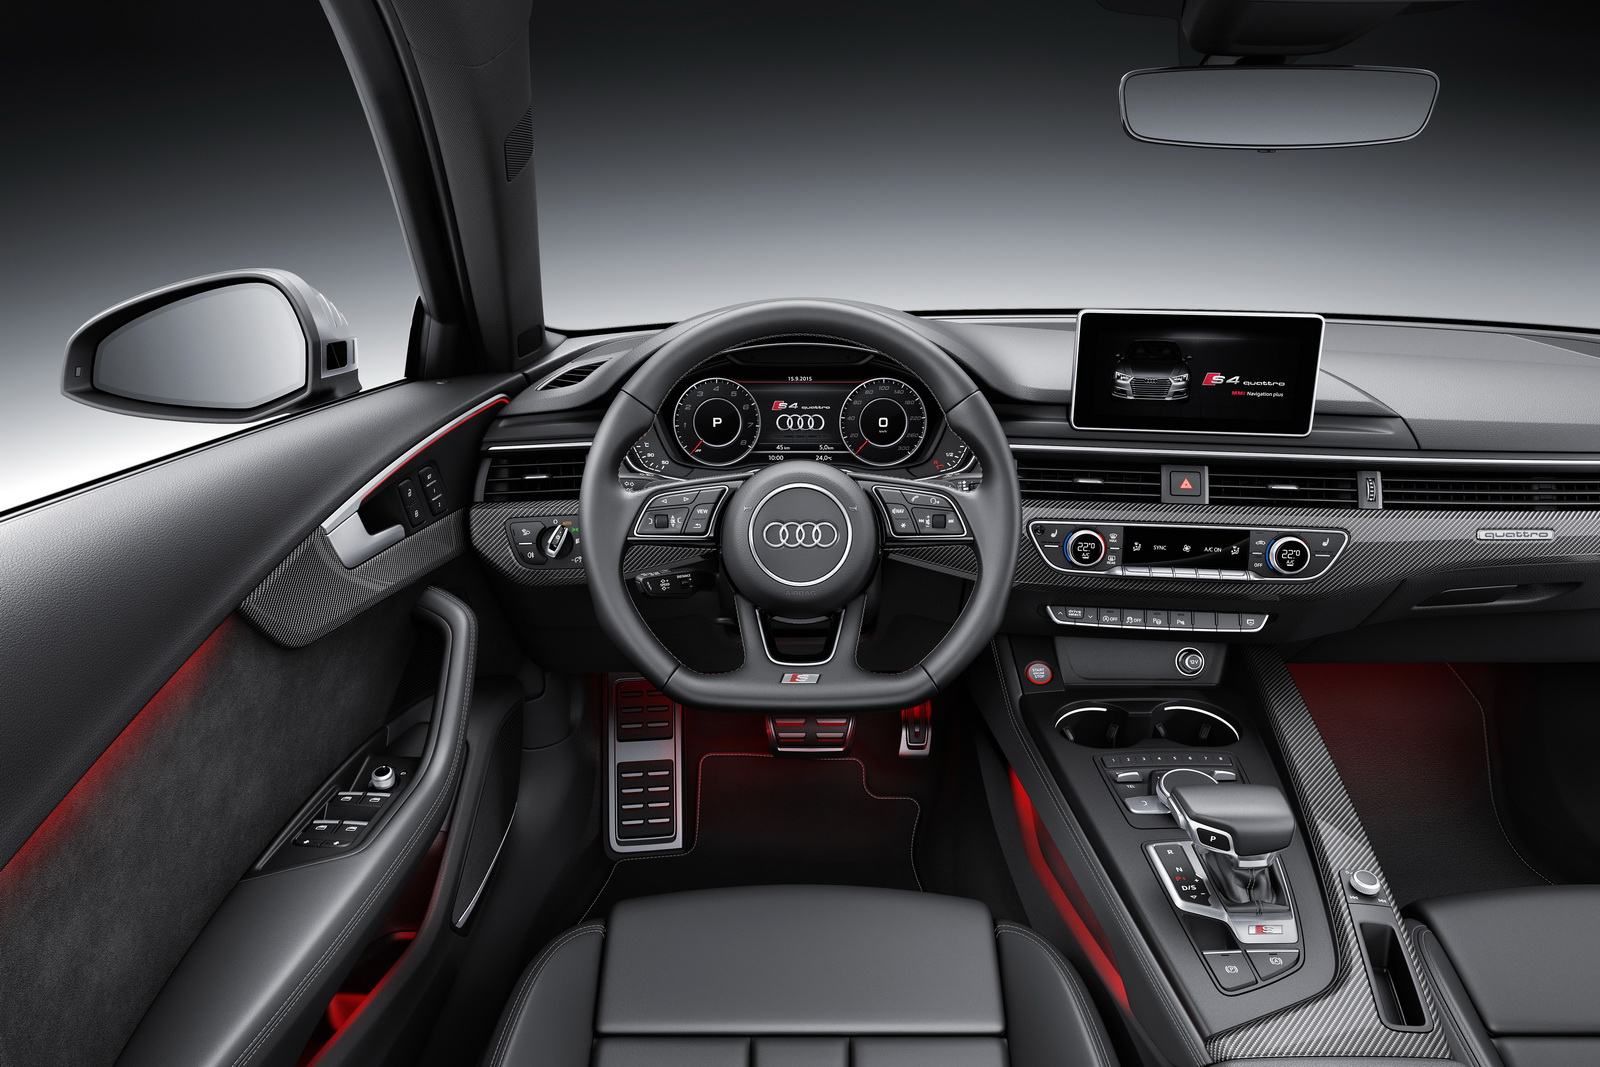 Audi Details Lighter New S4 & S4 Avant With 349HP, 0-62mph in 4.7sec [60 Pics] | Carscoops